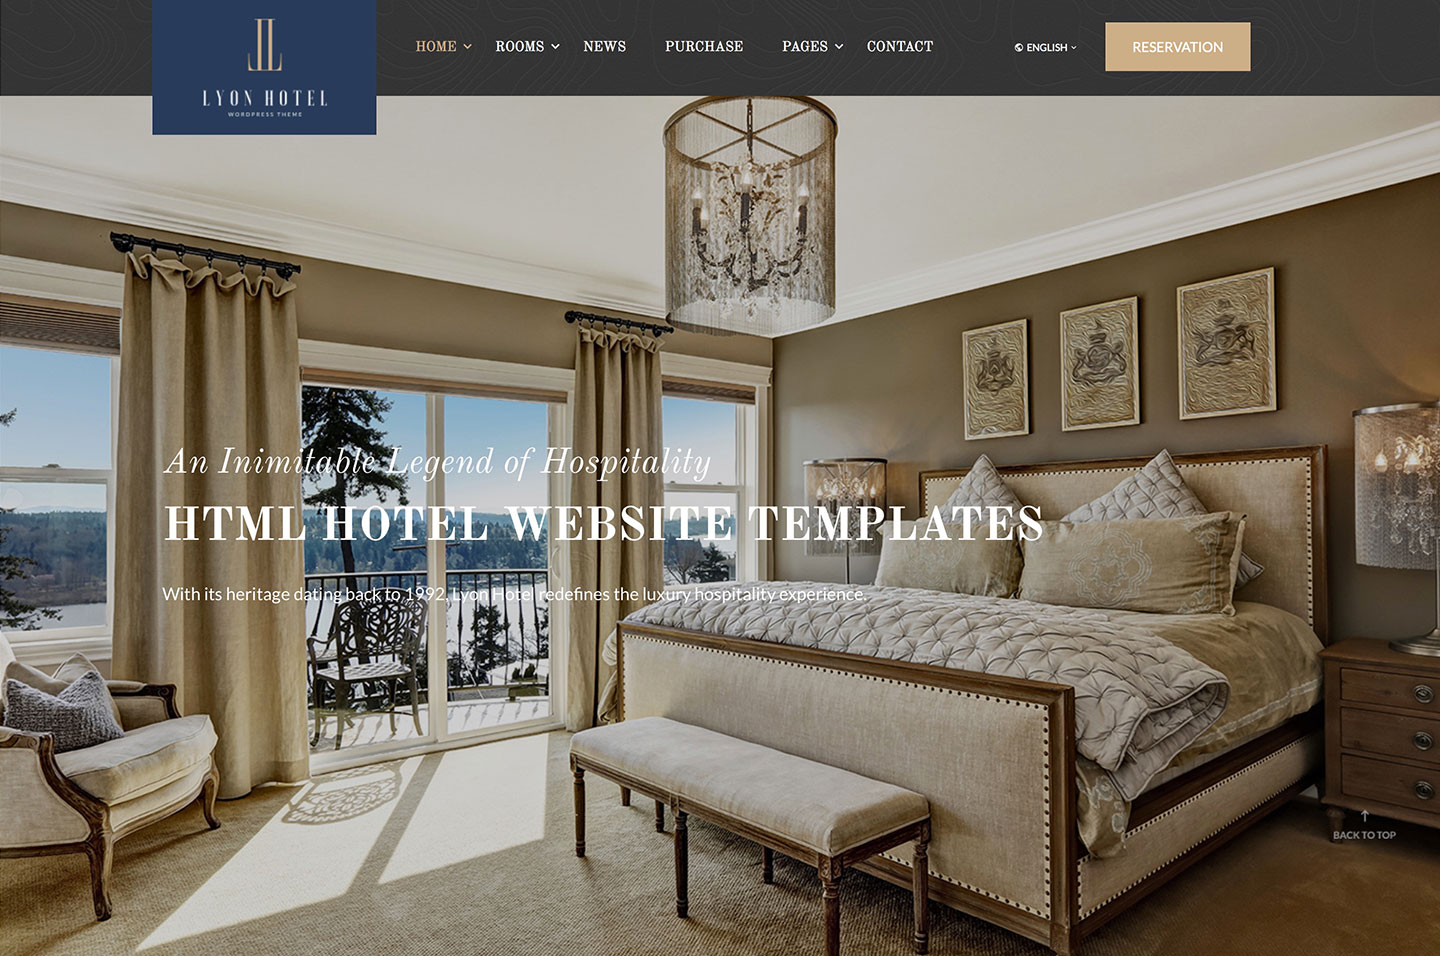 21 top html5 hotel booking website templates 2018 colorlib for Hotel web design